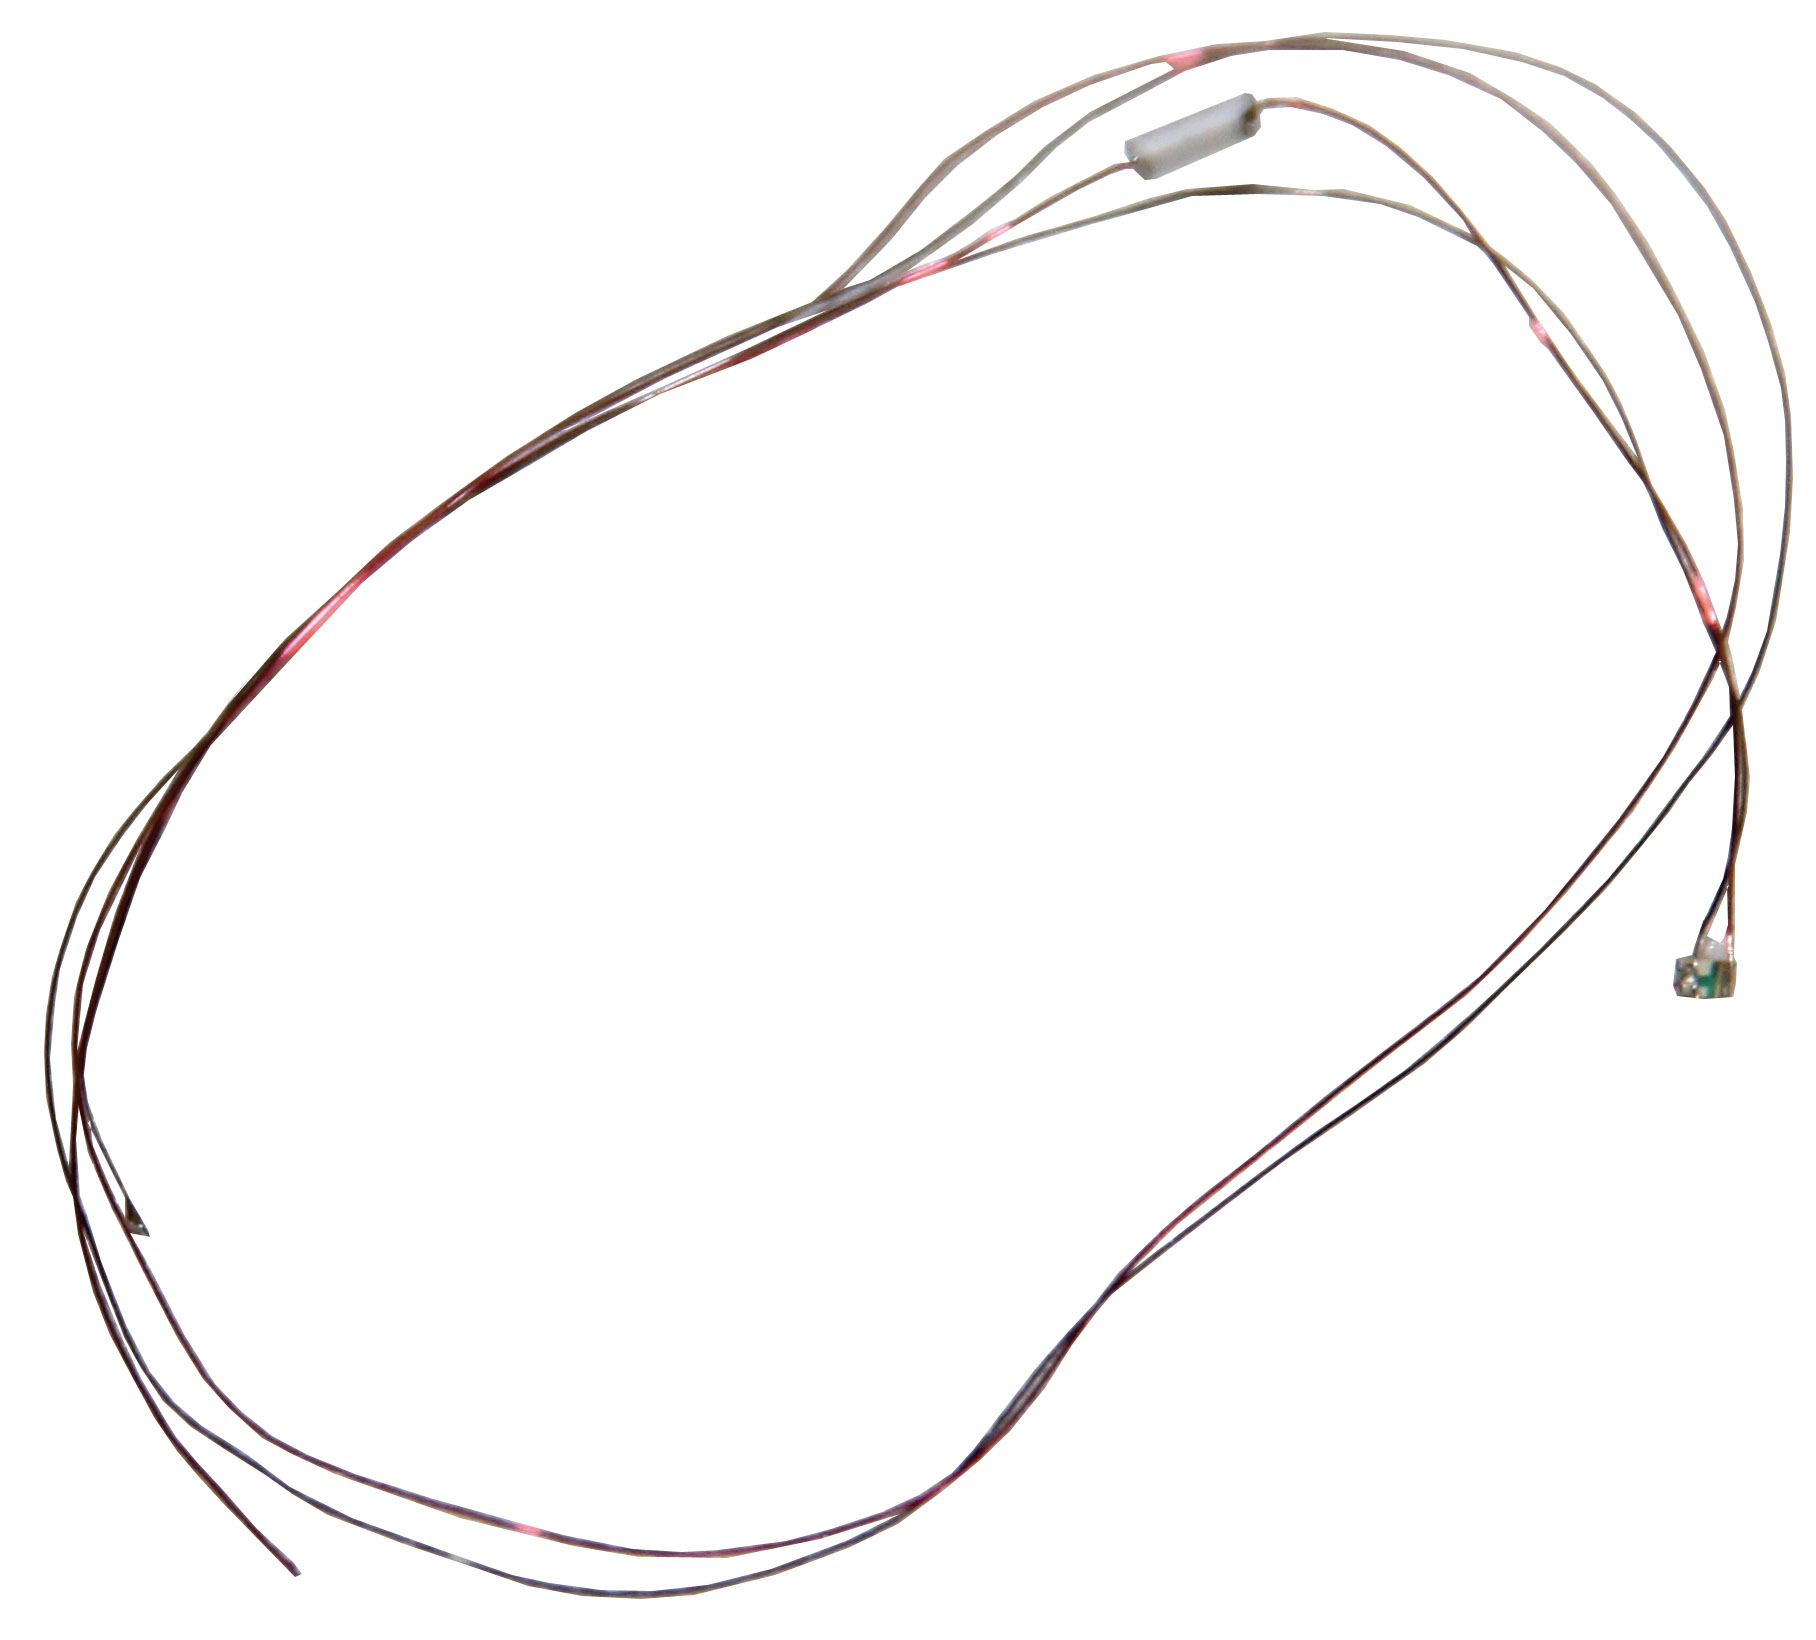 Leuchtdiode 0603, orange, mit Kabel, 3,7-4,8 V